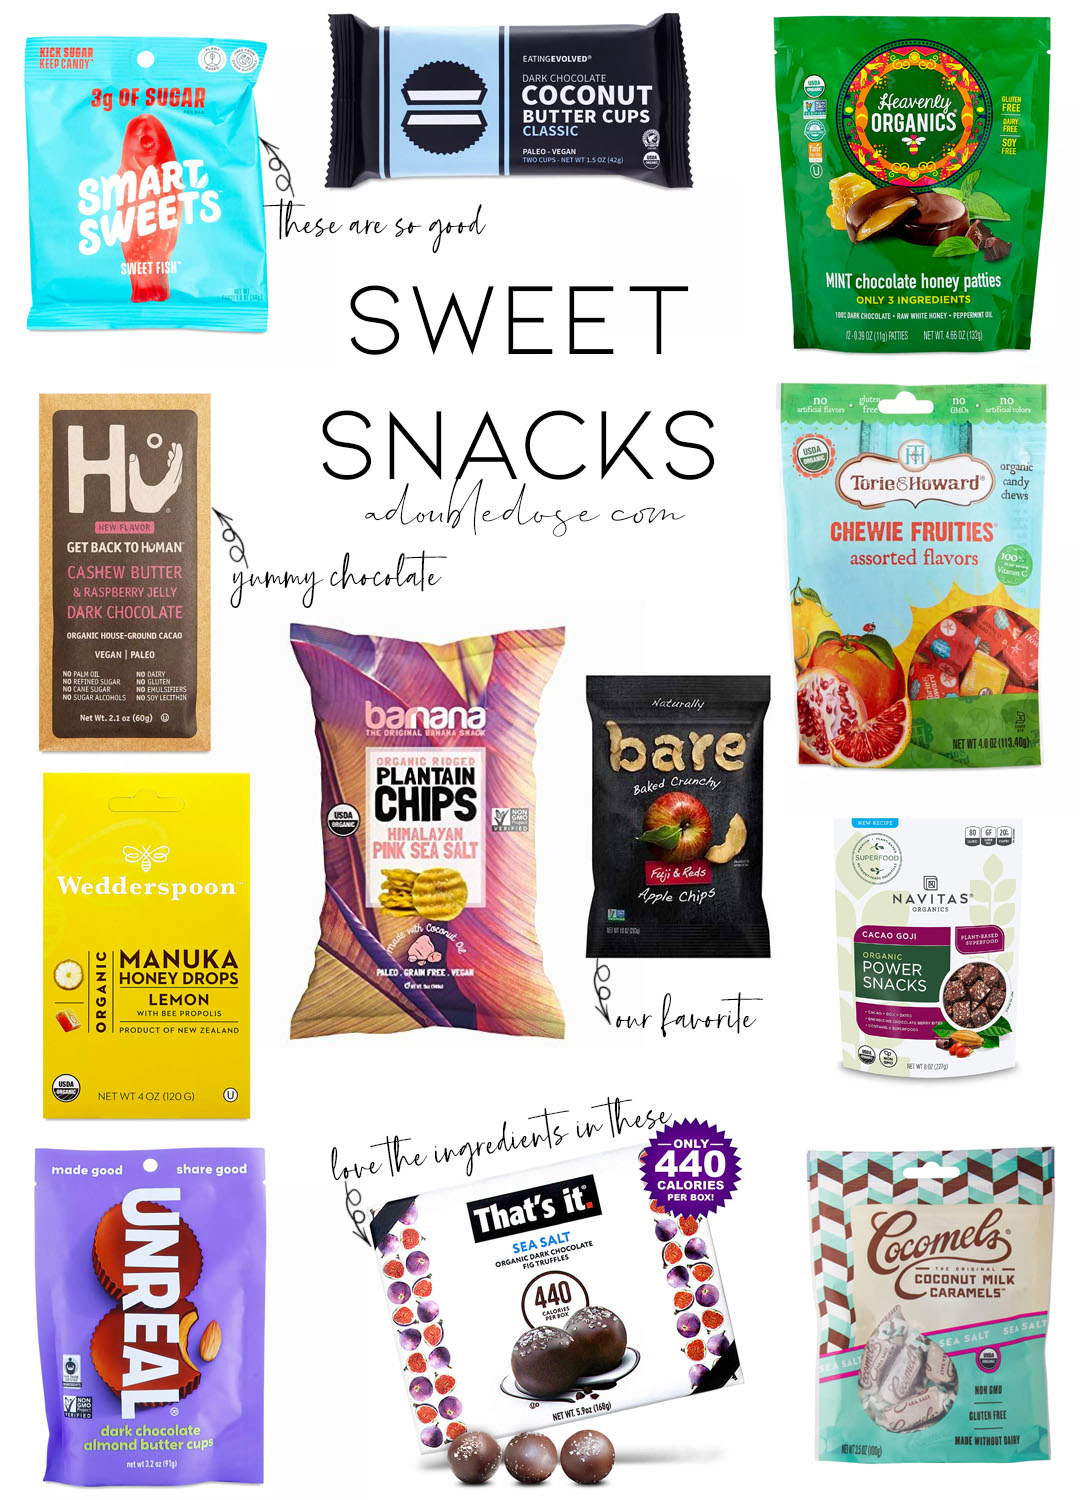 lifestyle and fashion blogger alexis belbel sharing healthy sweet snacks that are vegan and organic : bare apple chips, plantain chips,   adoubledose.com